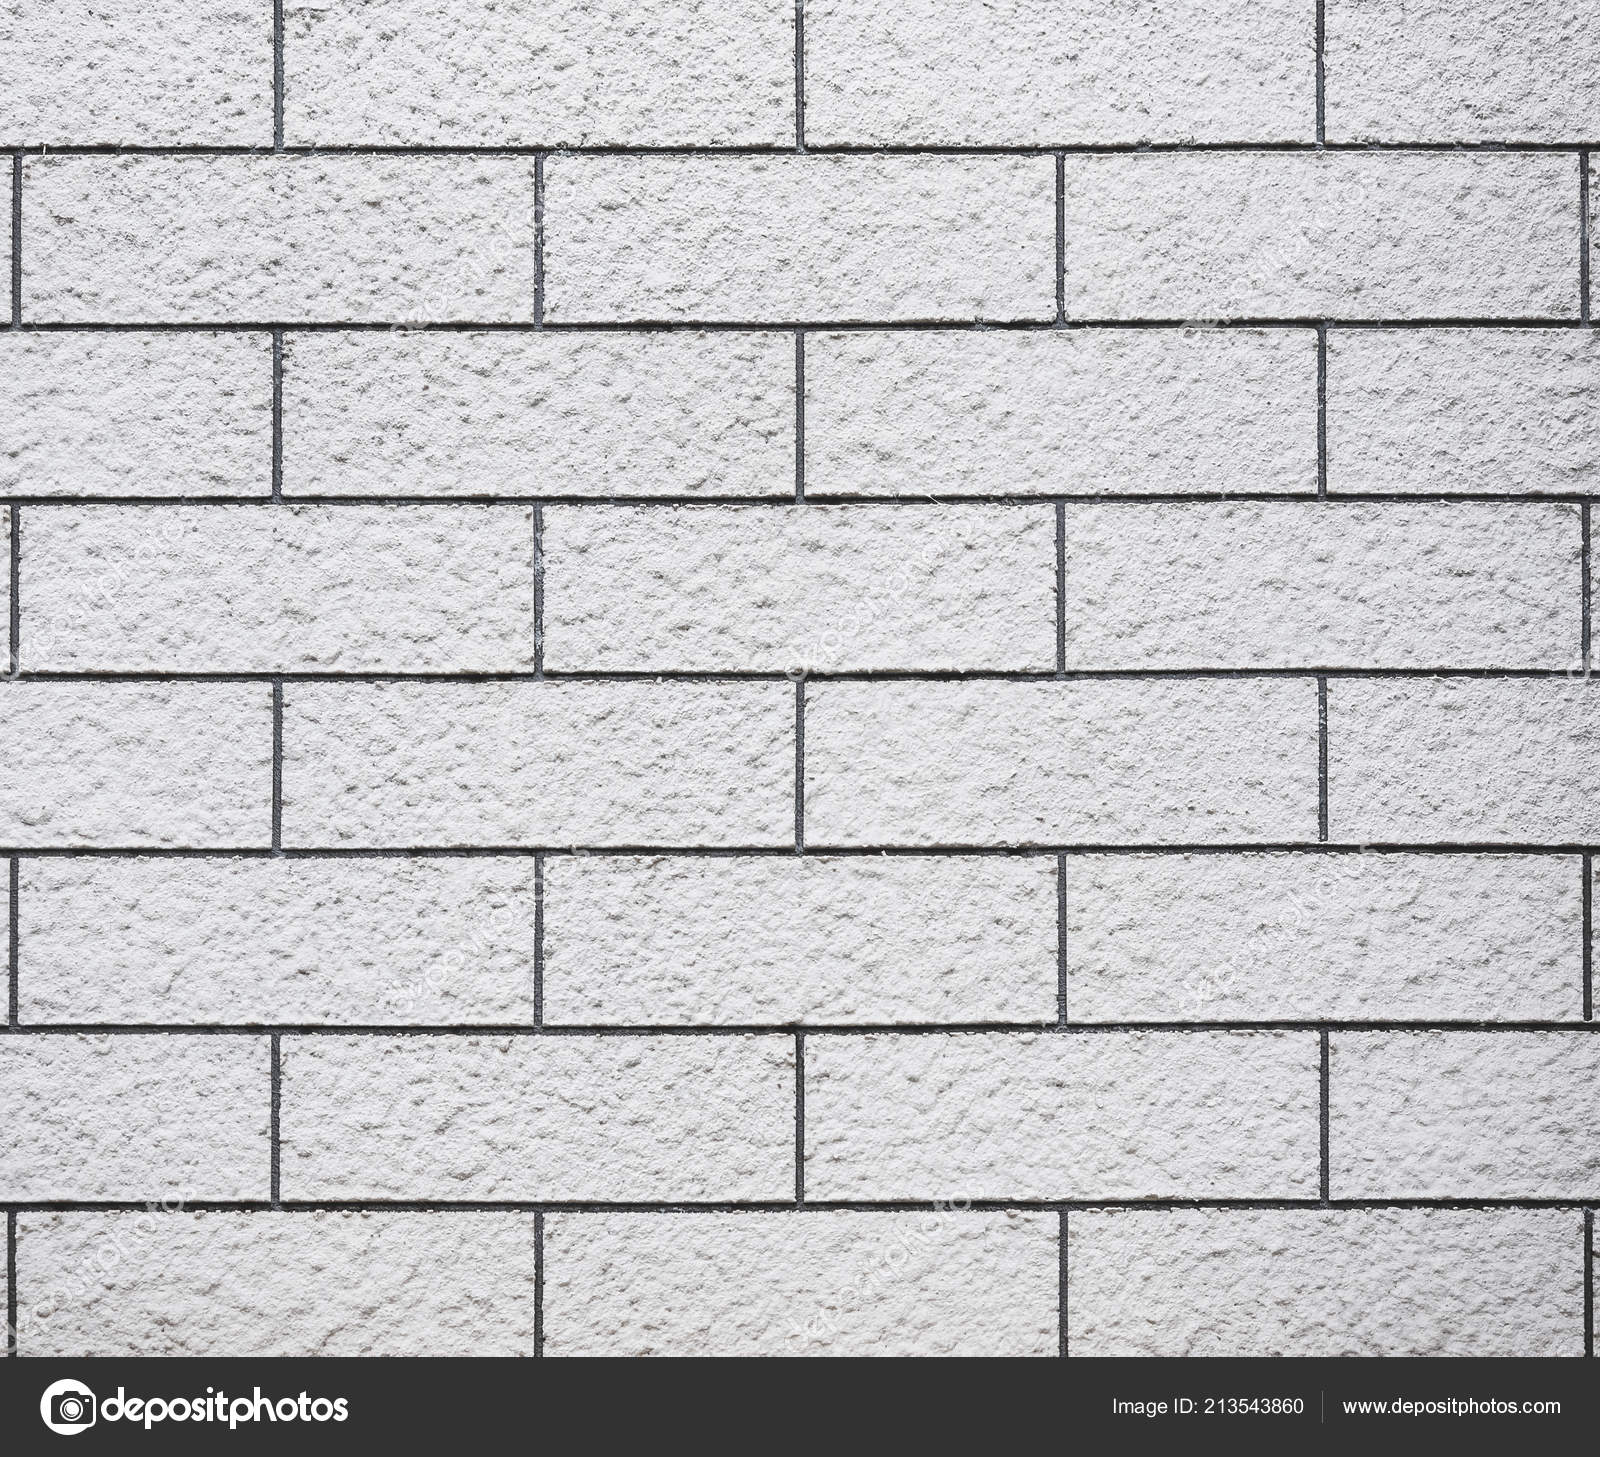 Carreaux De Ciment Texture Mur Brique Carreaux Ciment Texture Fond Photographie Viteethumb